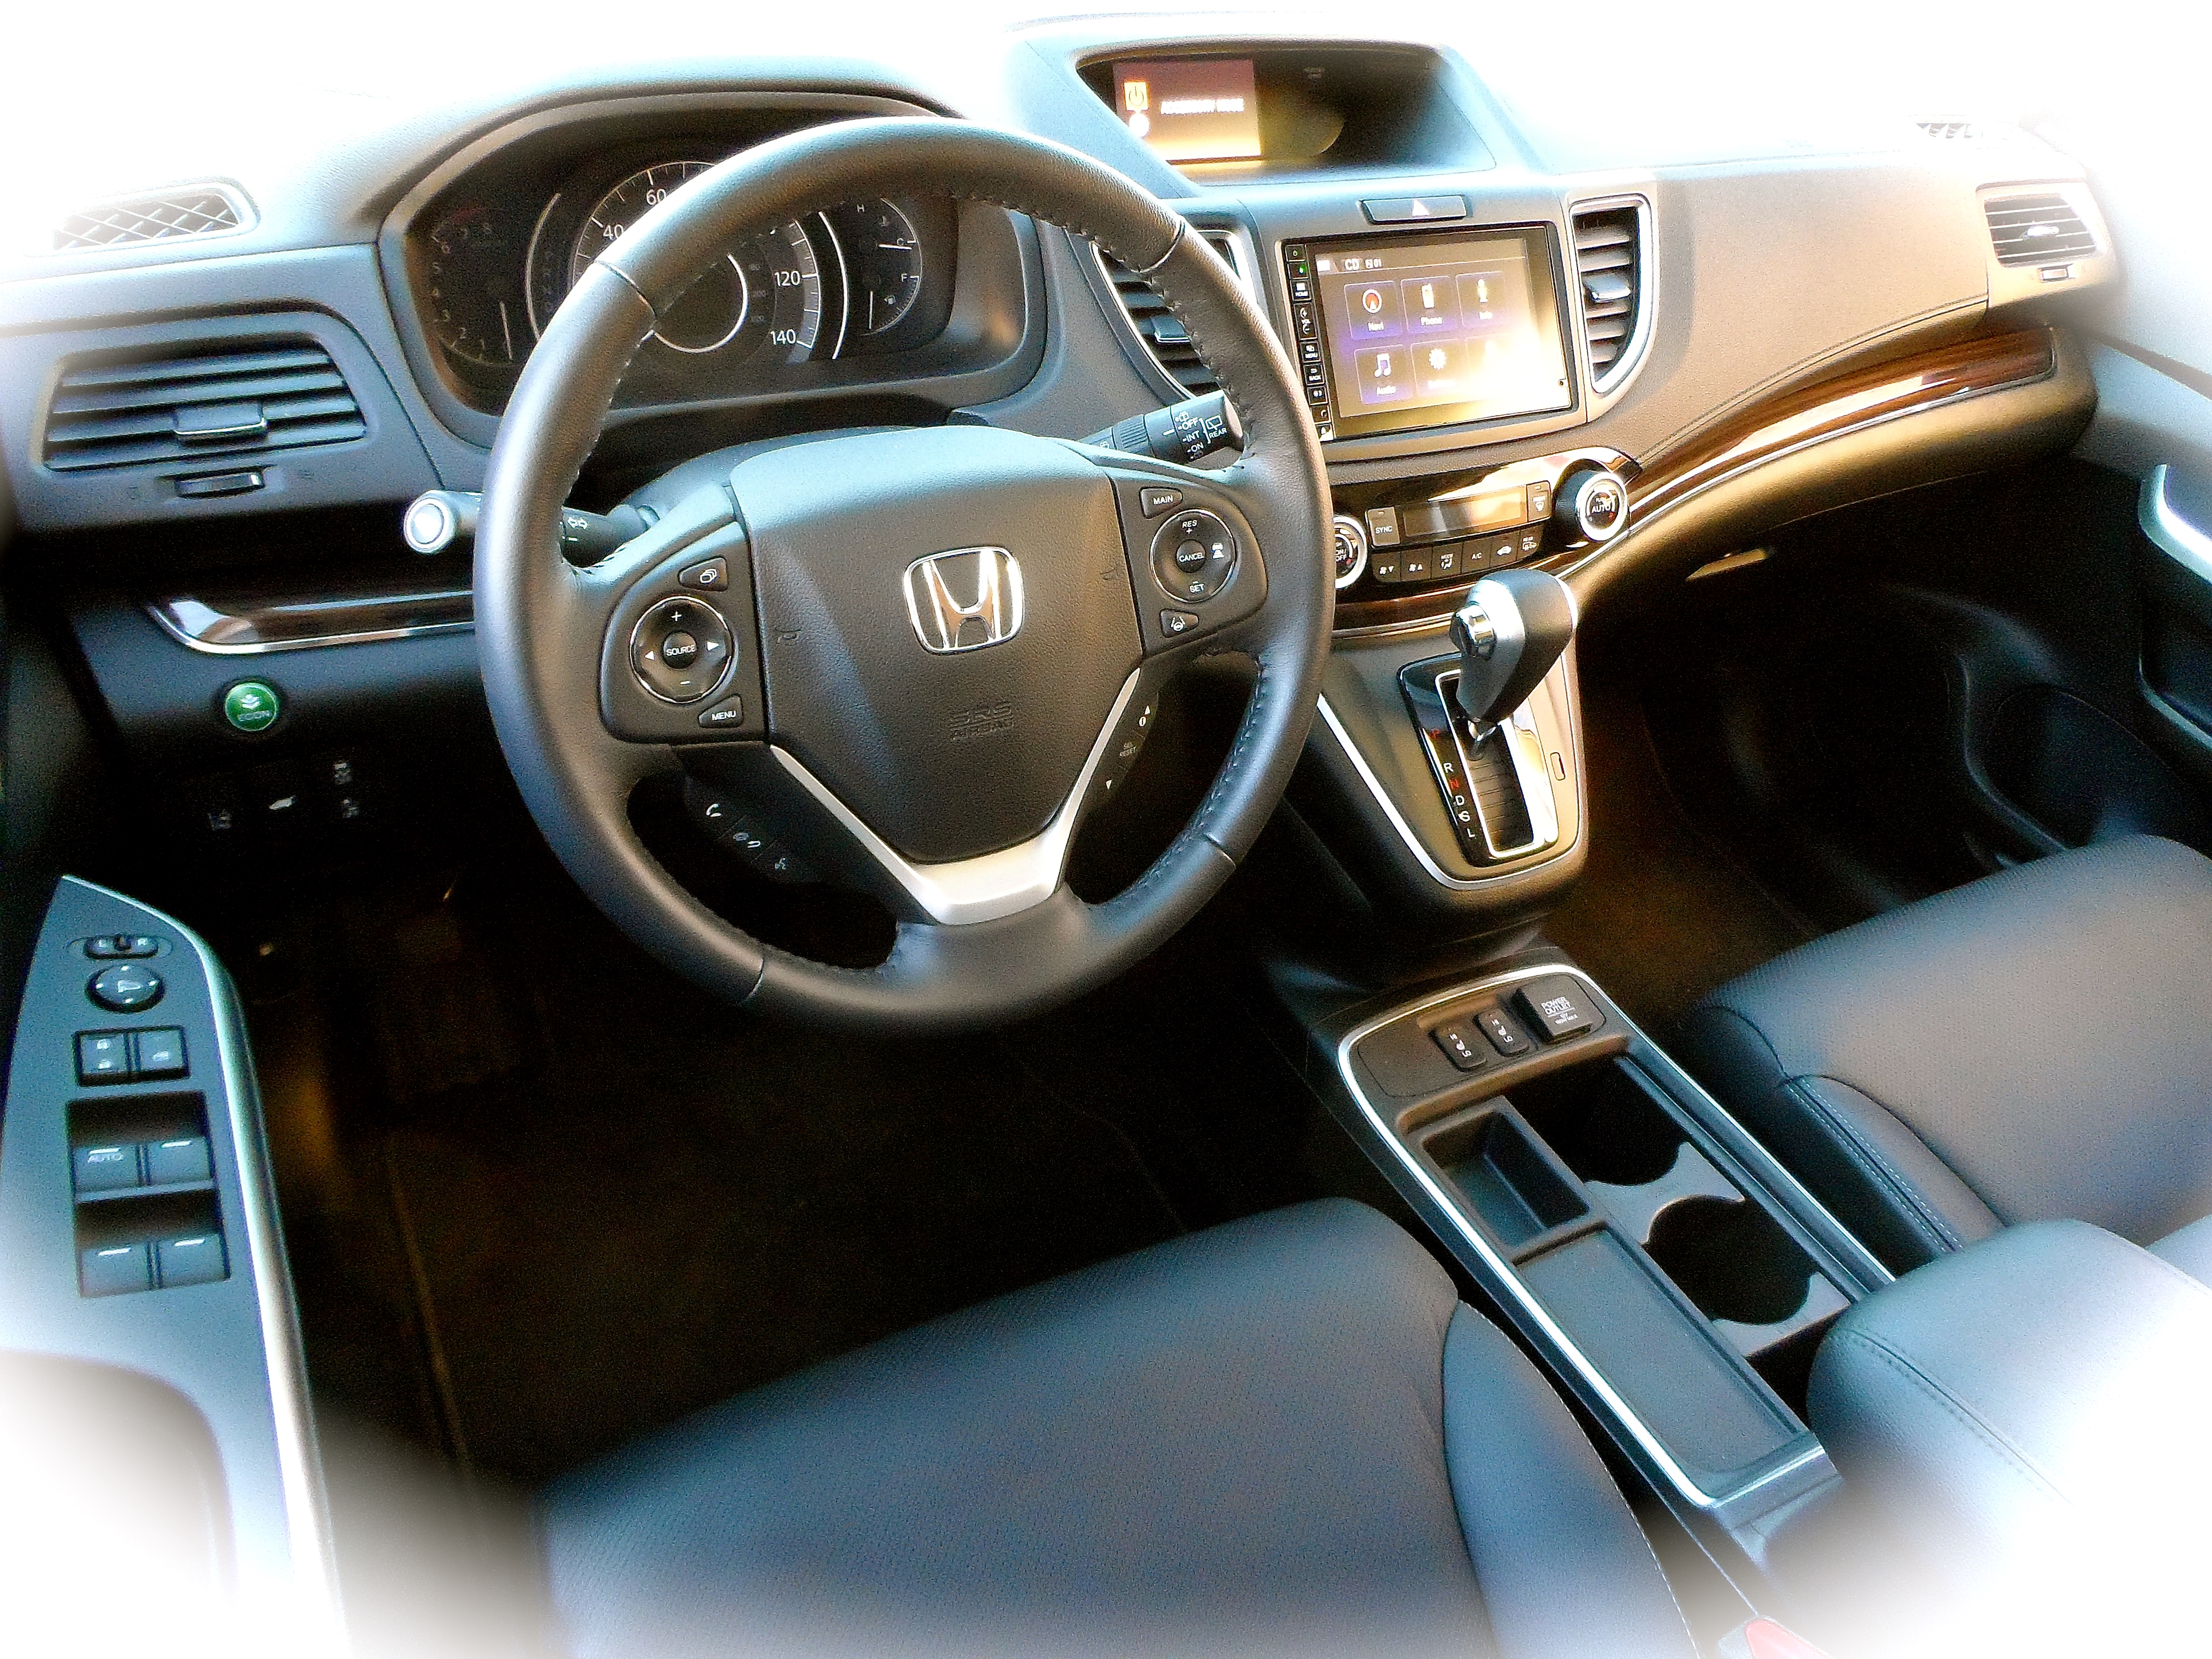 v small better an crv utility cr gets makeover get much than honda vehicle does interior a